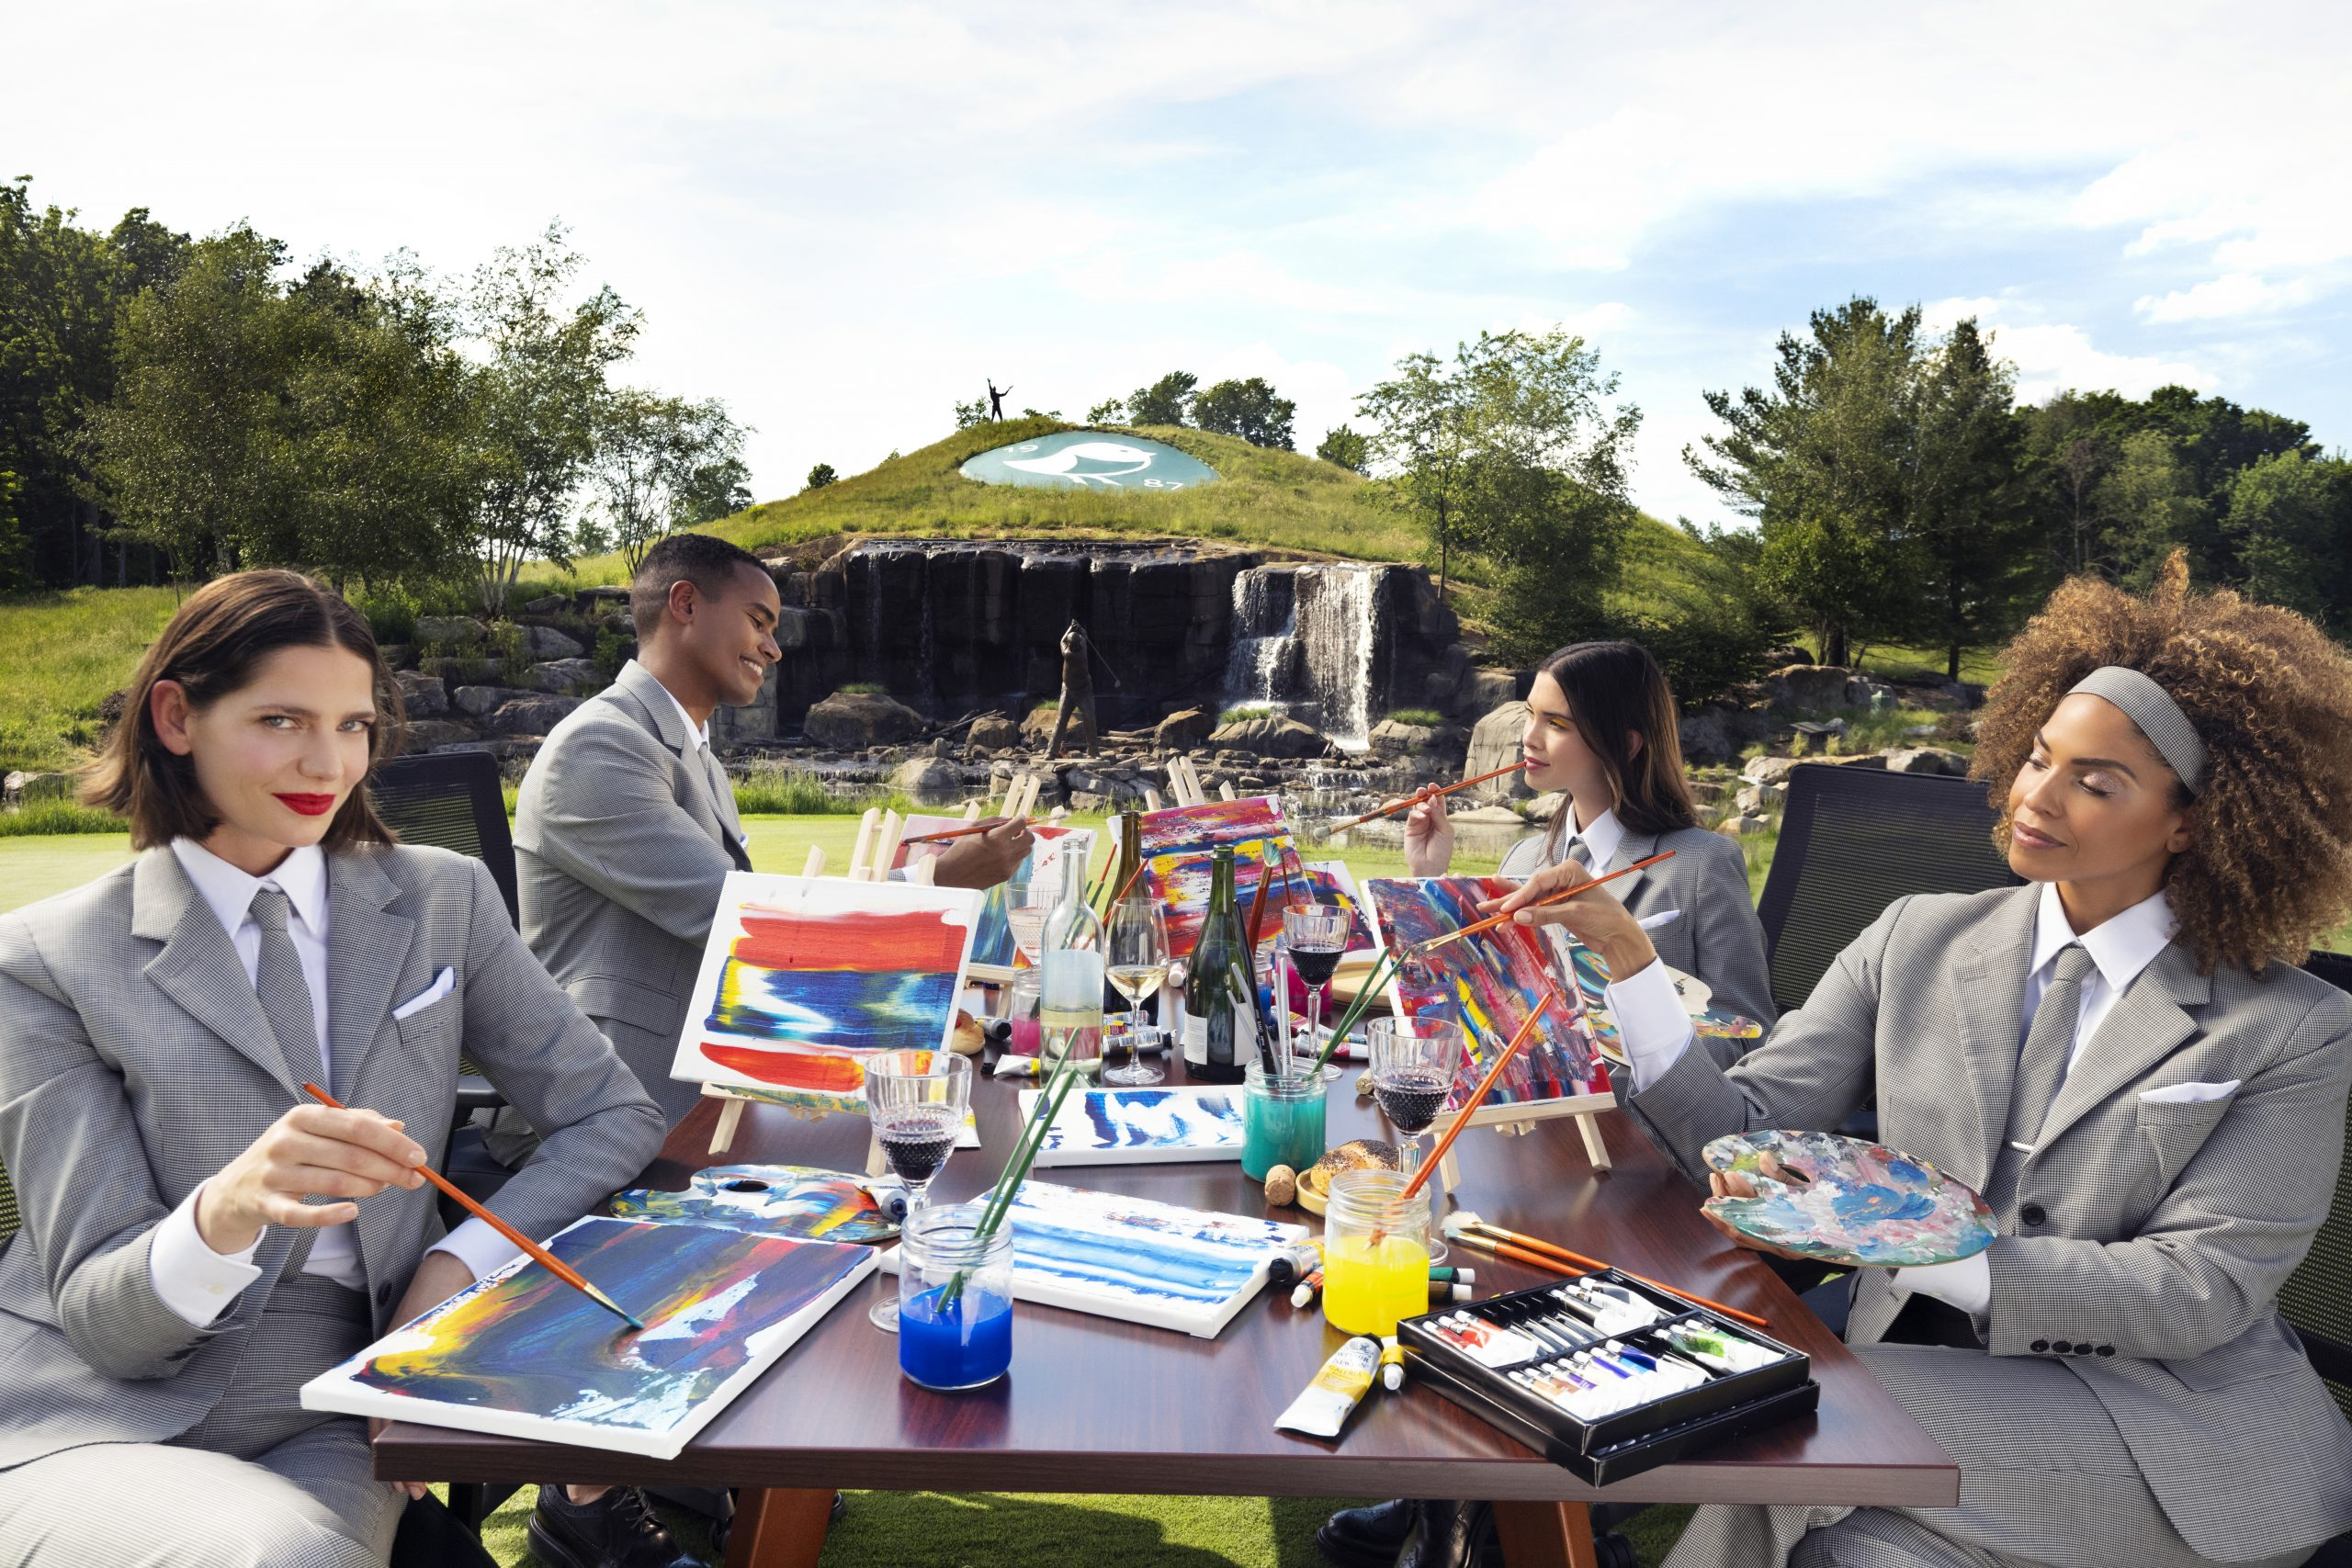 group of people painting